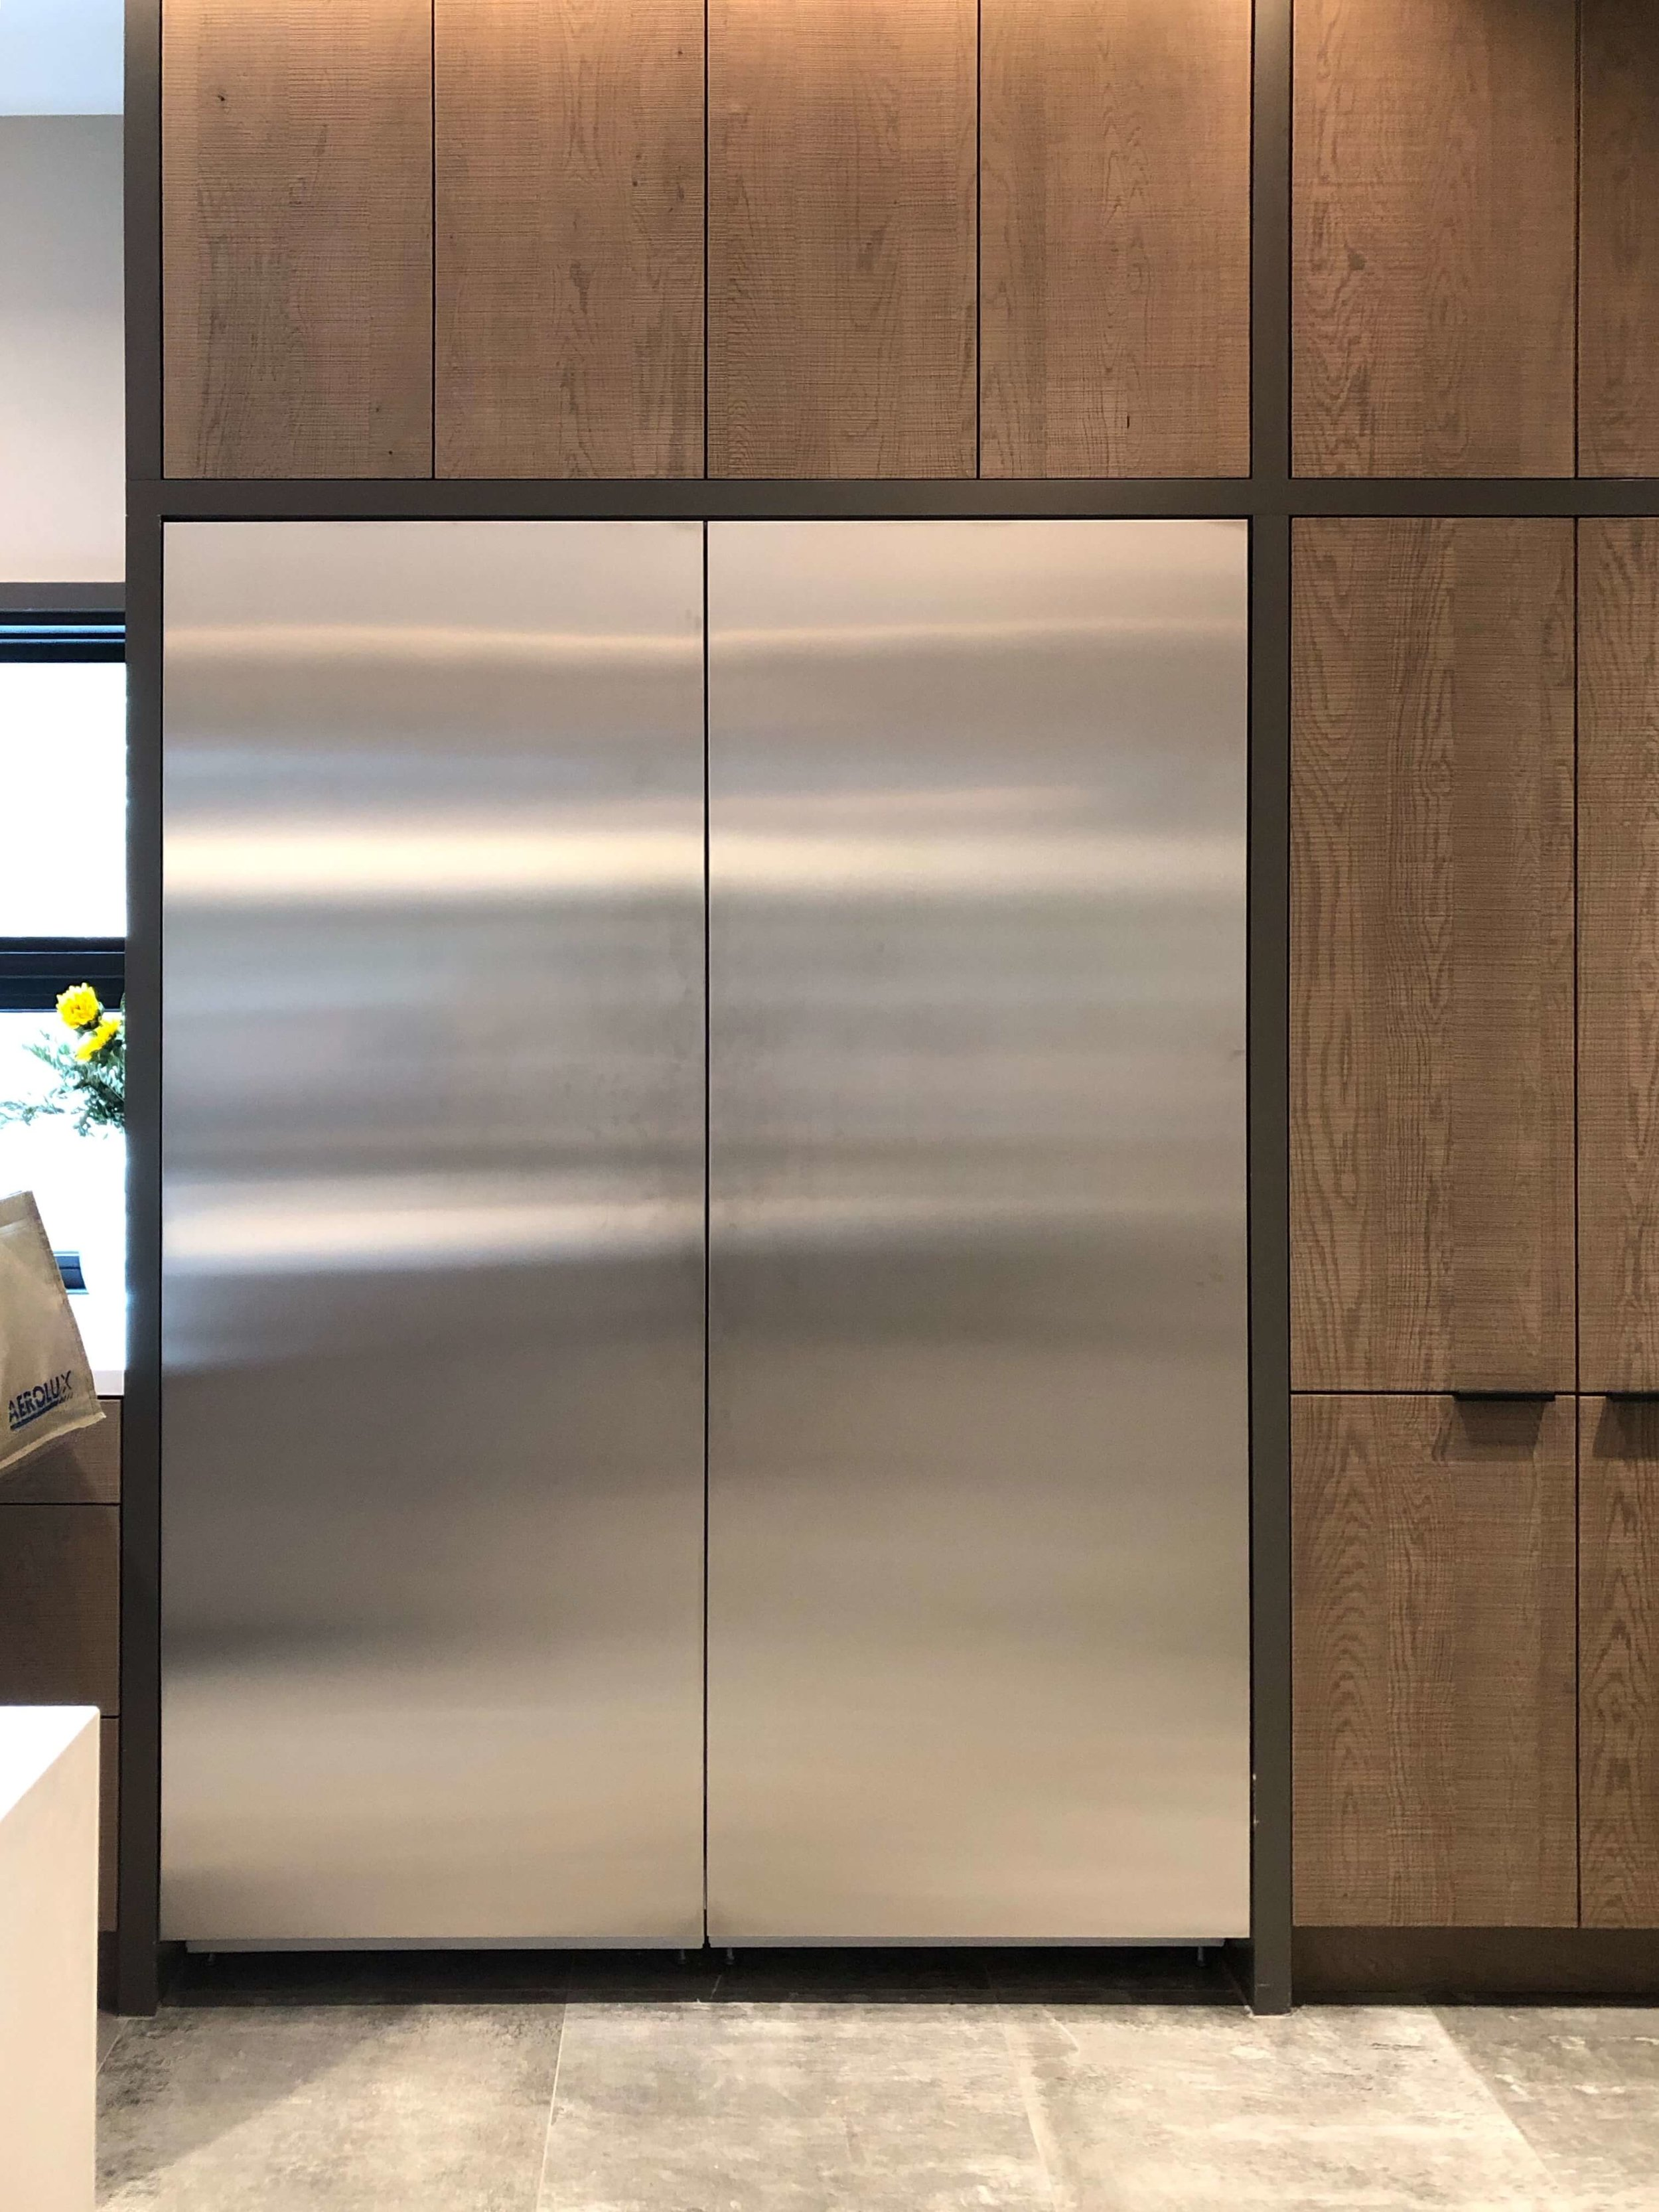 Touchlatch refrigeration with no handles on the stainless panels in the kitchen of The New American Remodel 2019. #hometour #refrigerator #kitchen #contemporaryhome